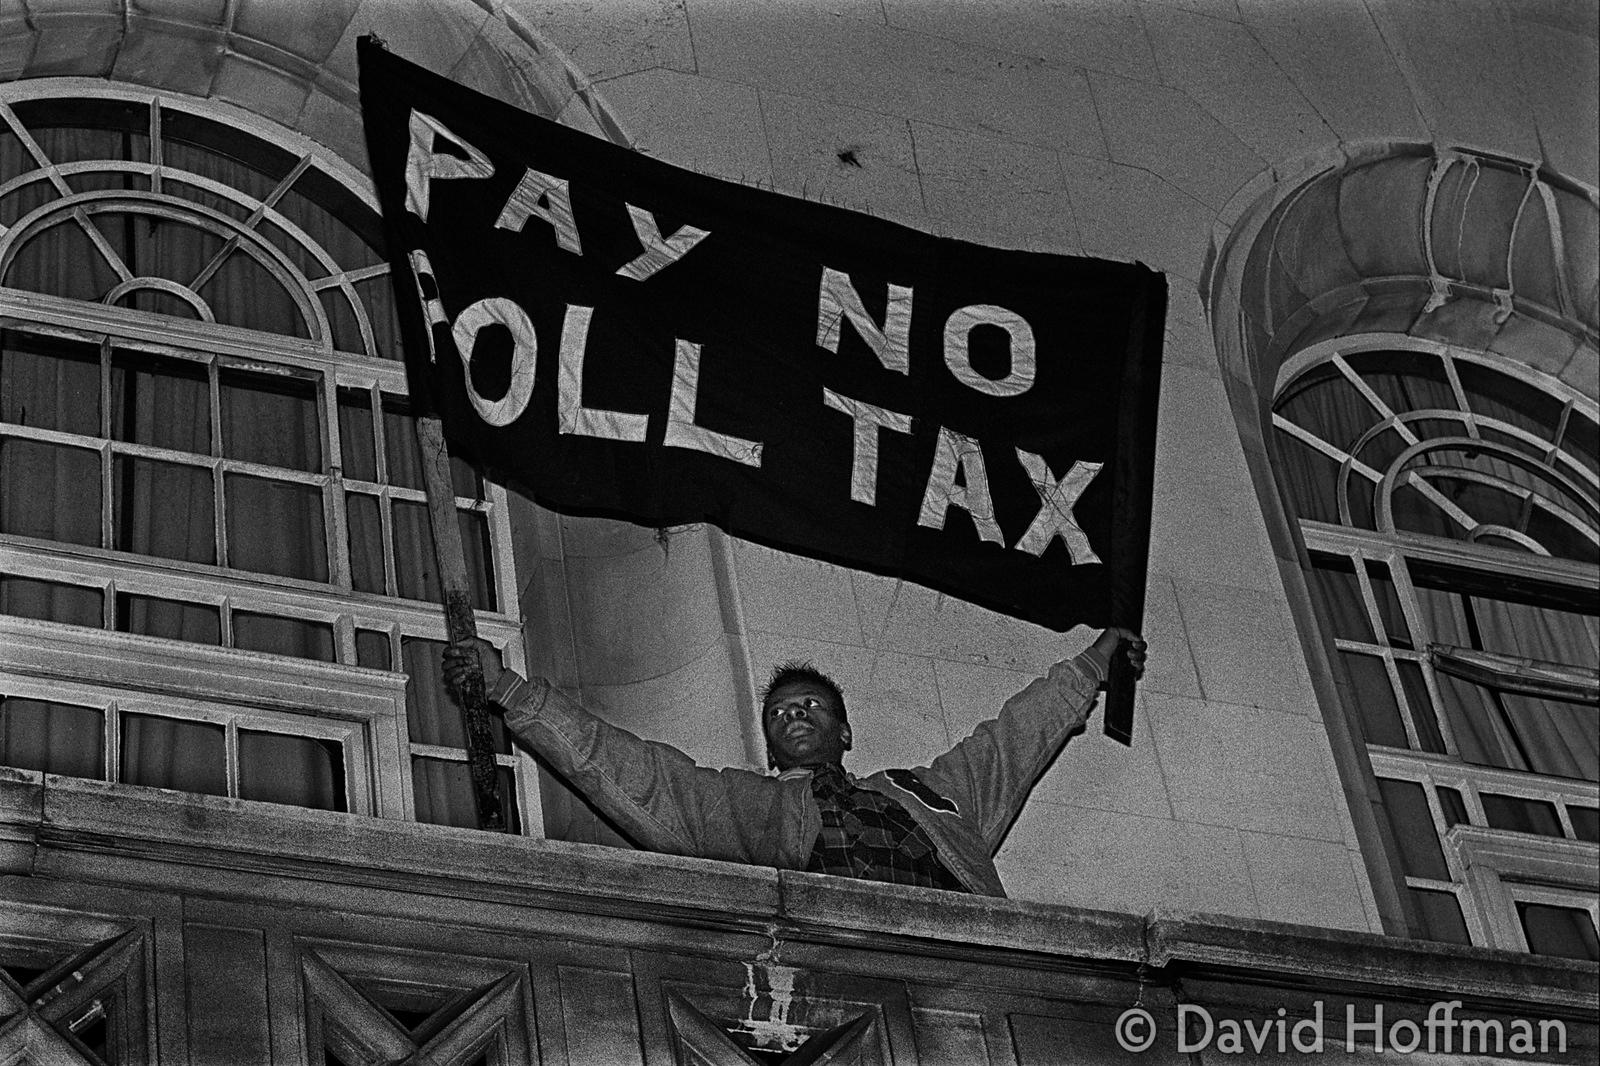 Poll Tax protests Hackney, London 1990